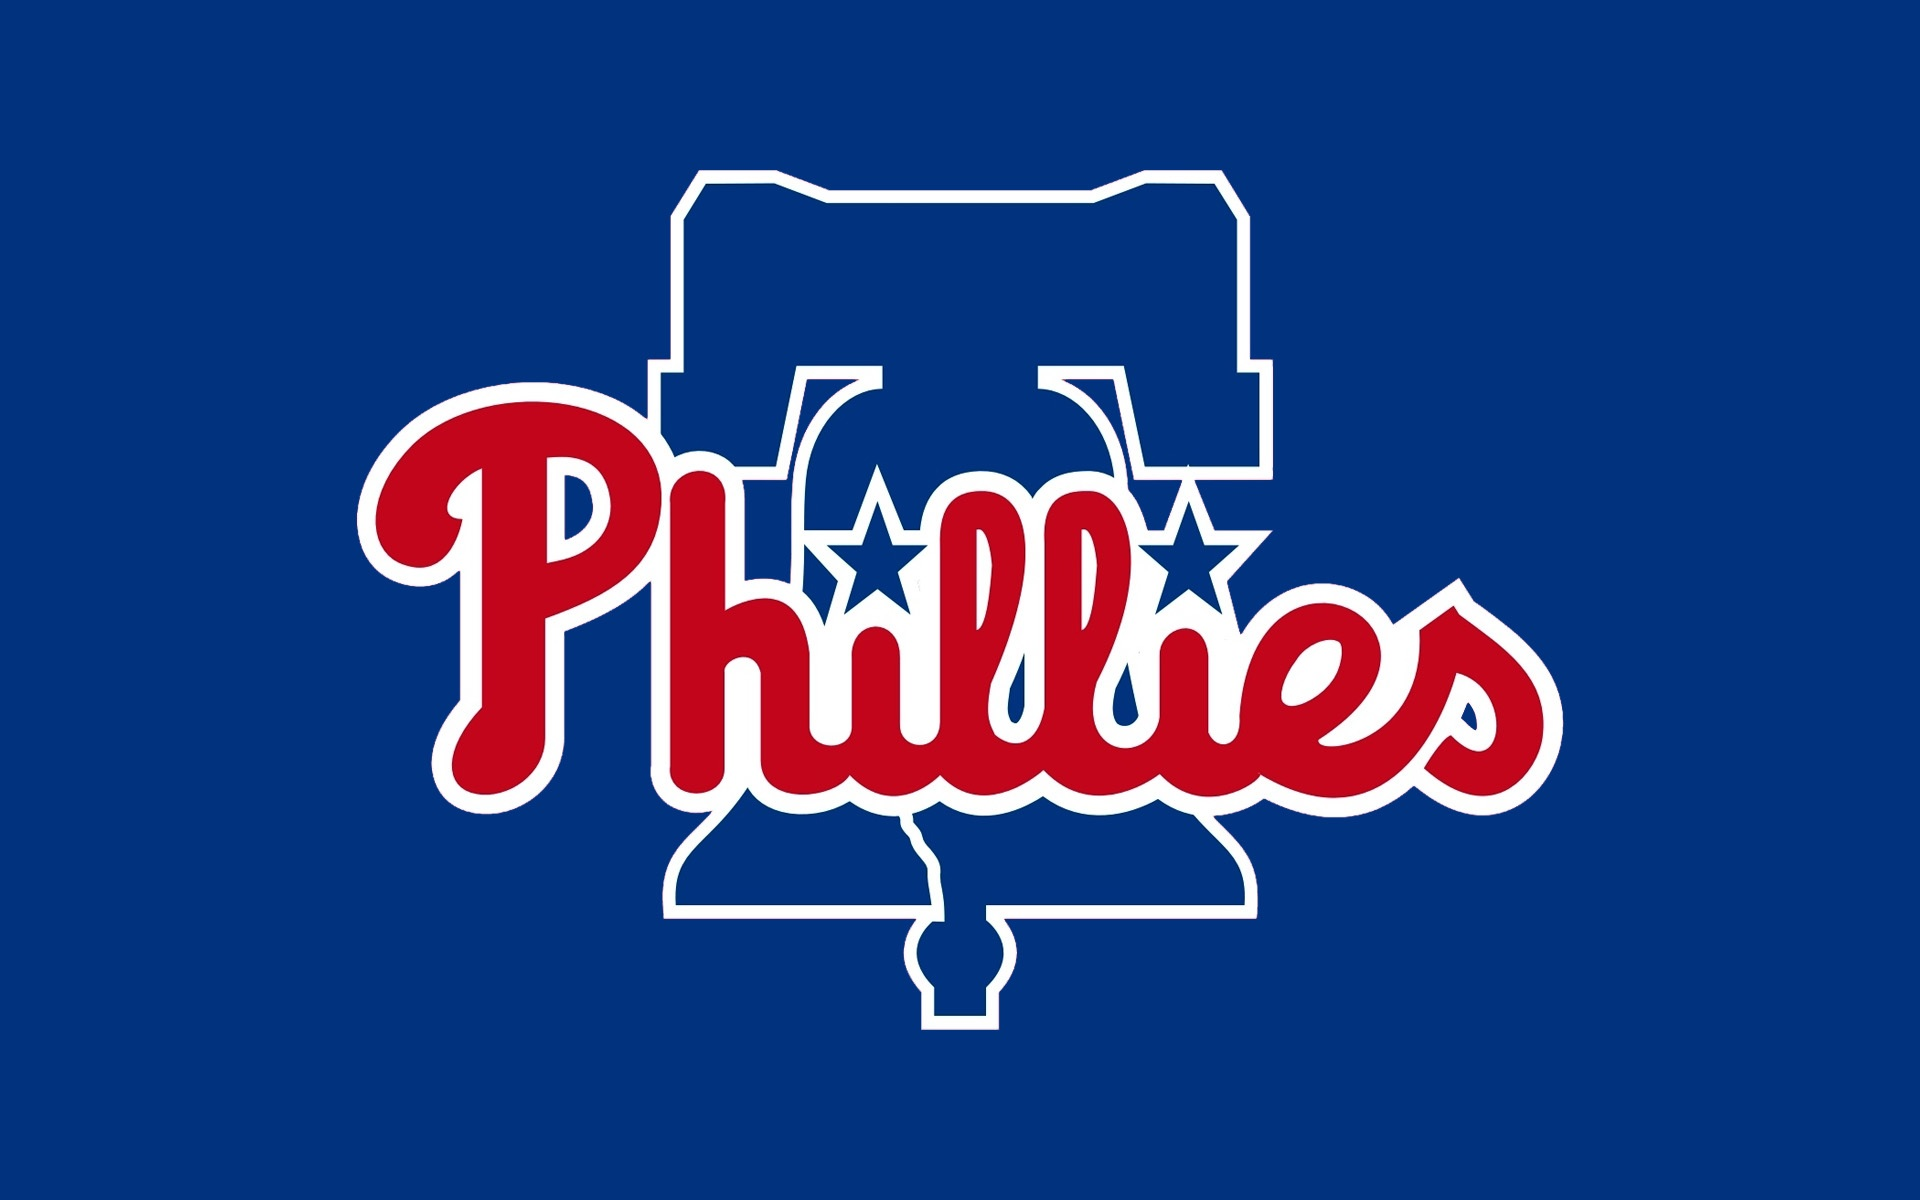 Philadelphia Phillies Browser Themes Desktop Wallpaper for Phanatics 1920x1200